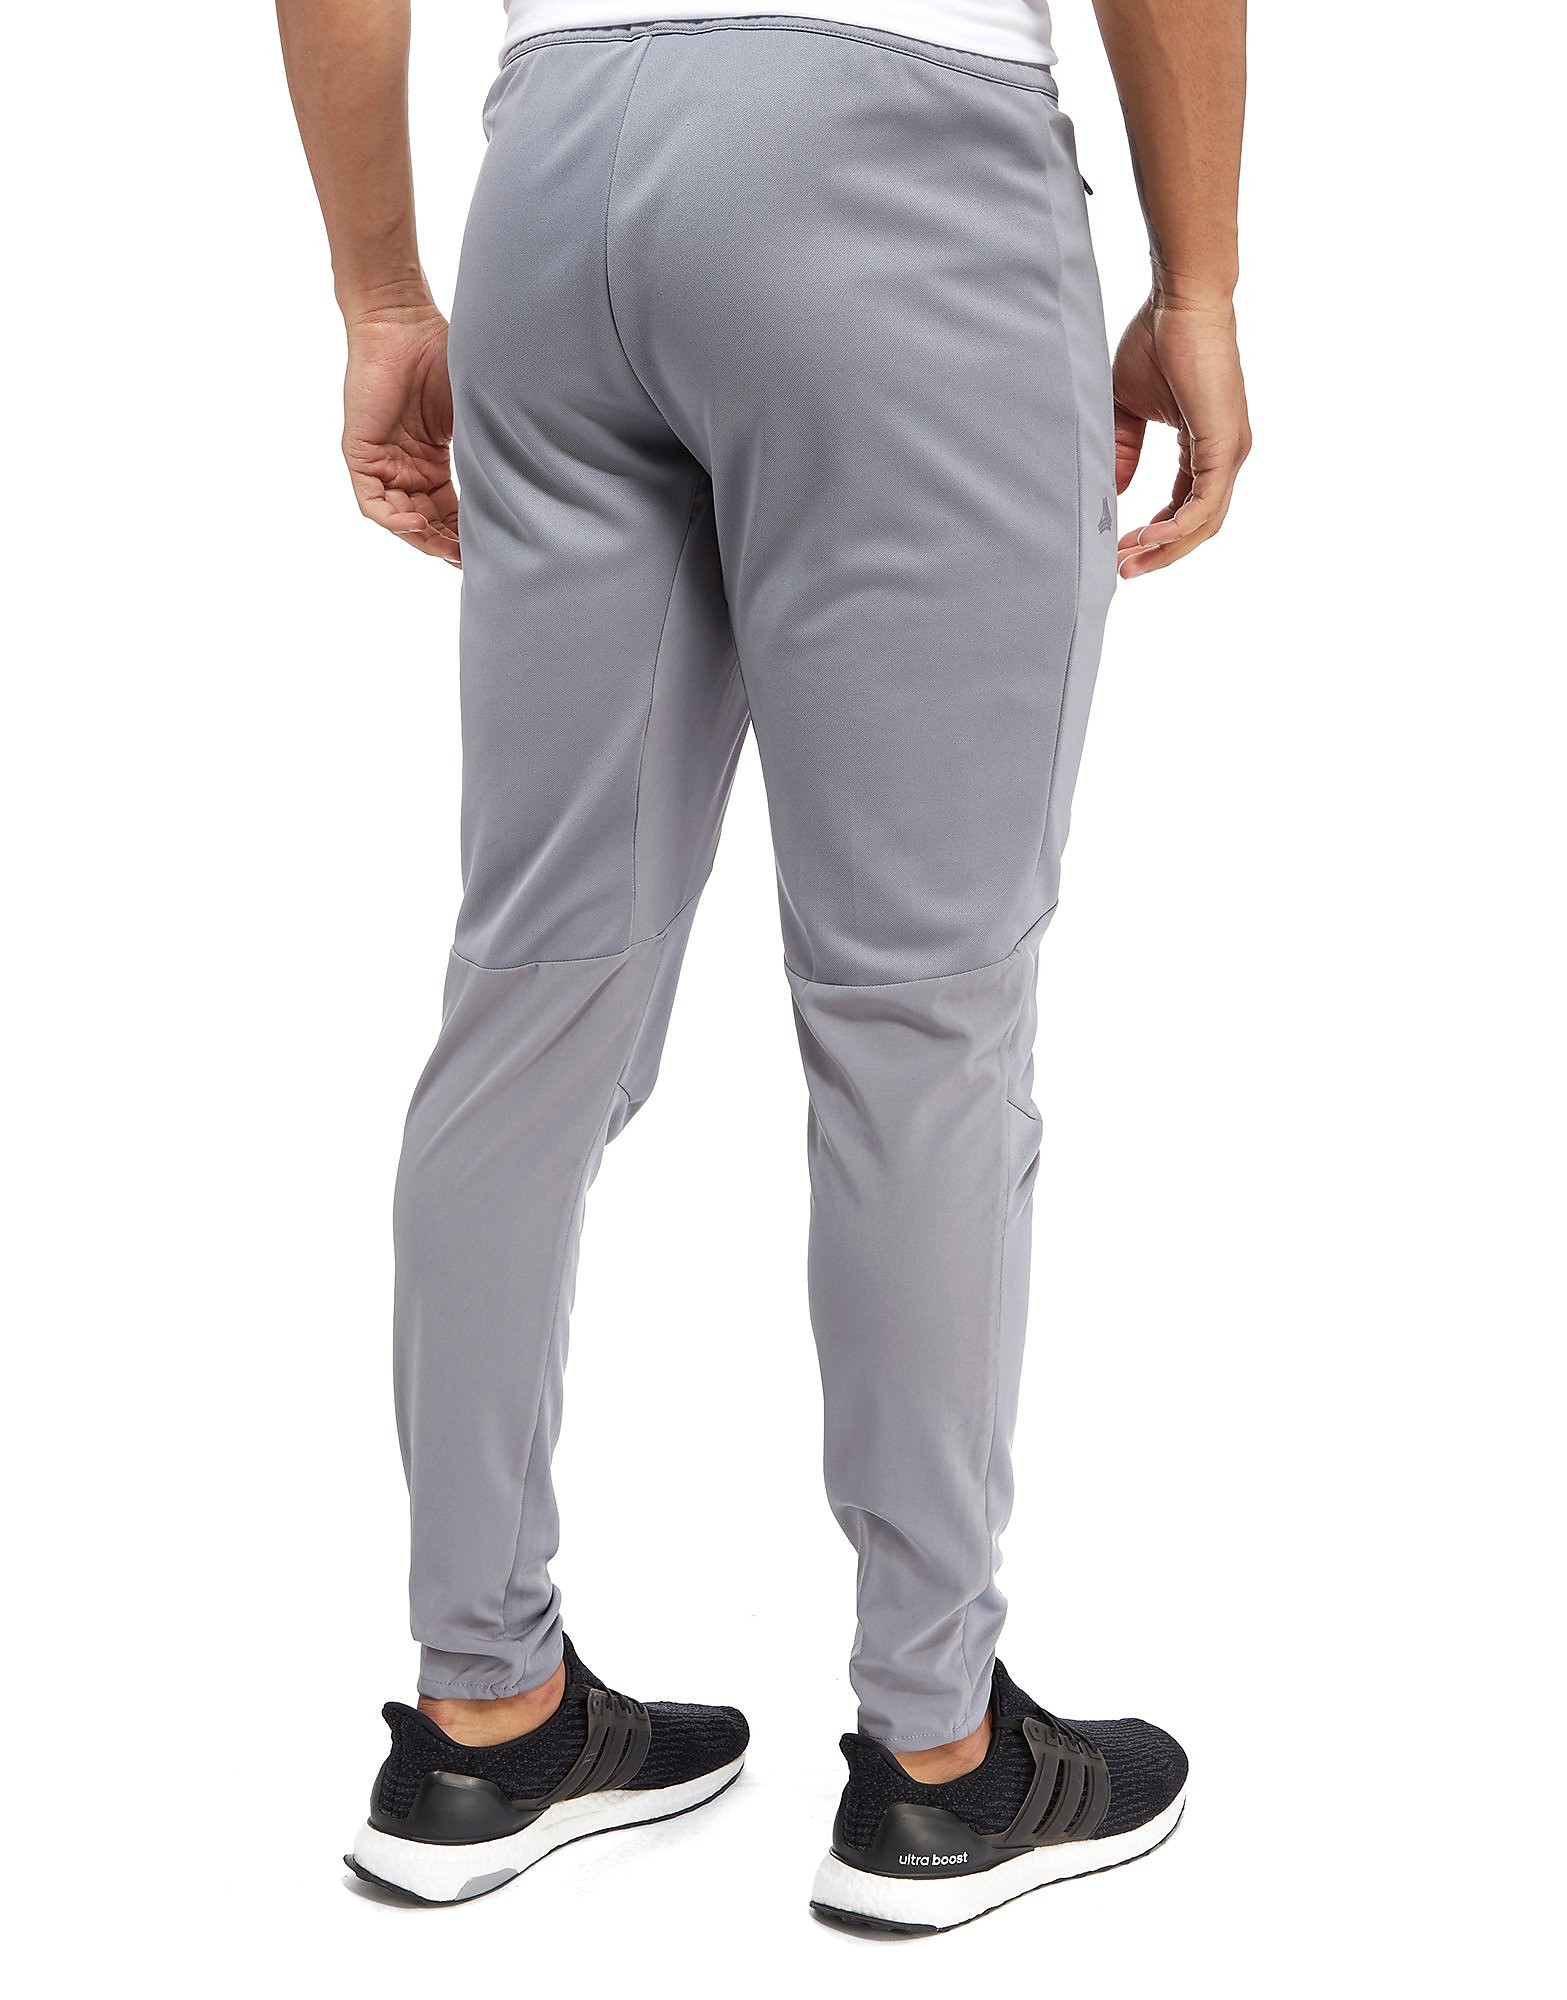 adidas Tango Future Training Pants